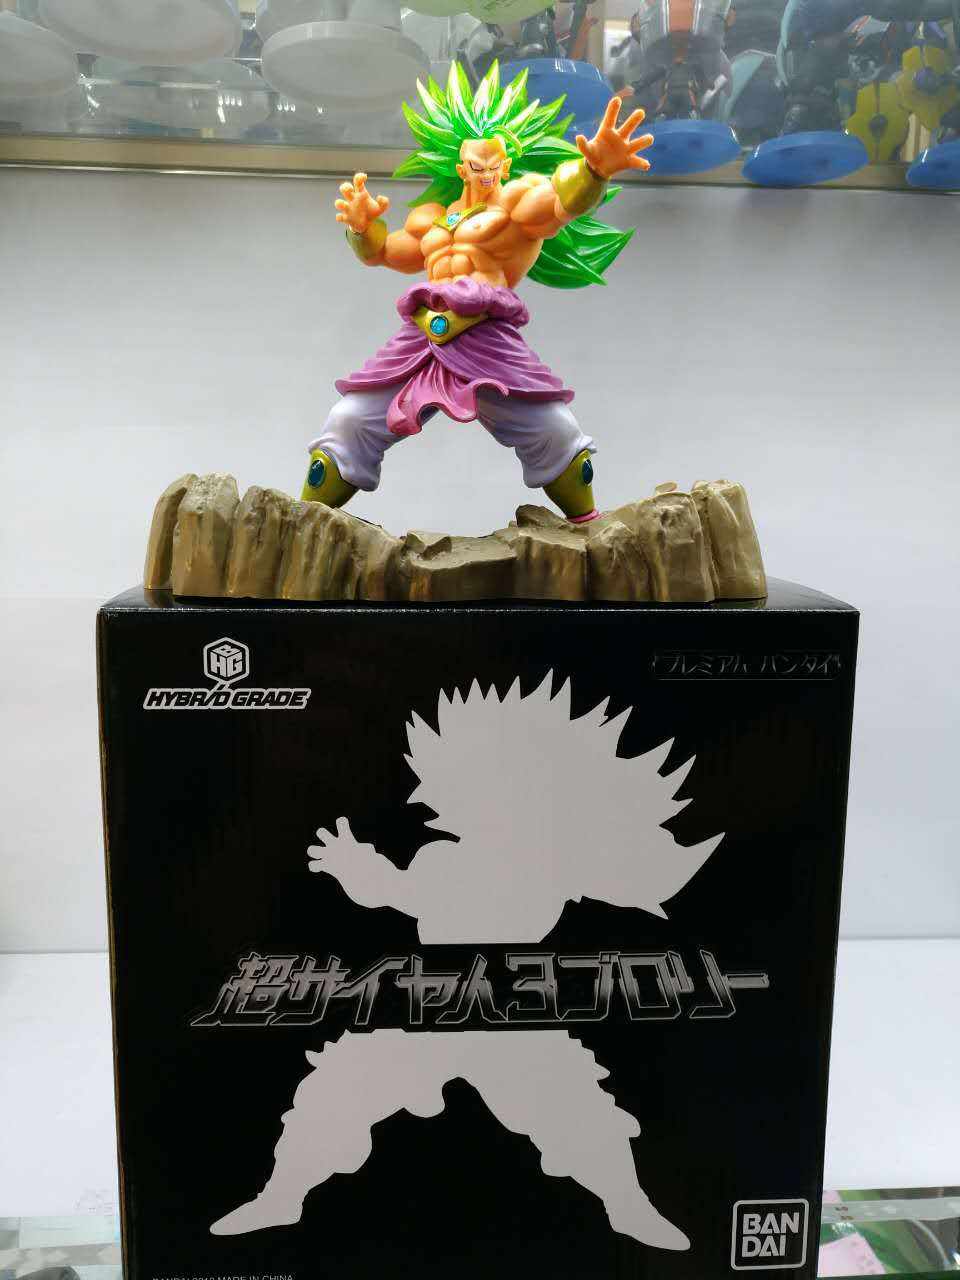 New arrival 17cm HYBRID GRADE Dragon Ball Z Super Saiyan 3 Broly Broli PVC Figure Collectible Model Toy dragon ball z broli 1 8 scale painted figure super saiyan 3 broli doll pvc action figure collectible model toy 17cm kt3195